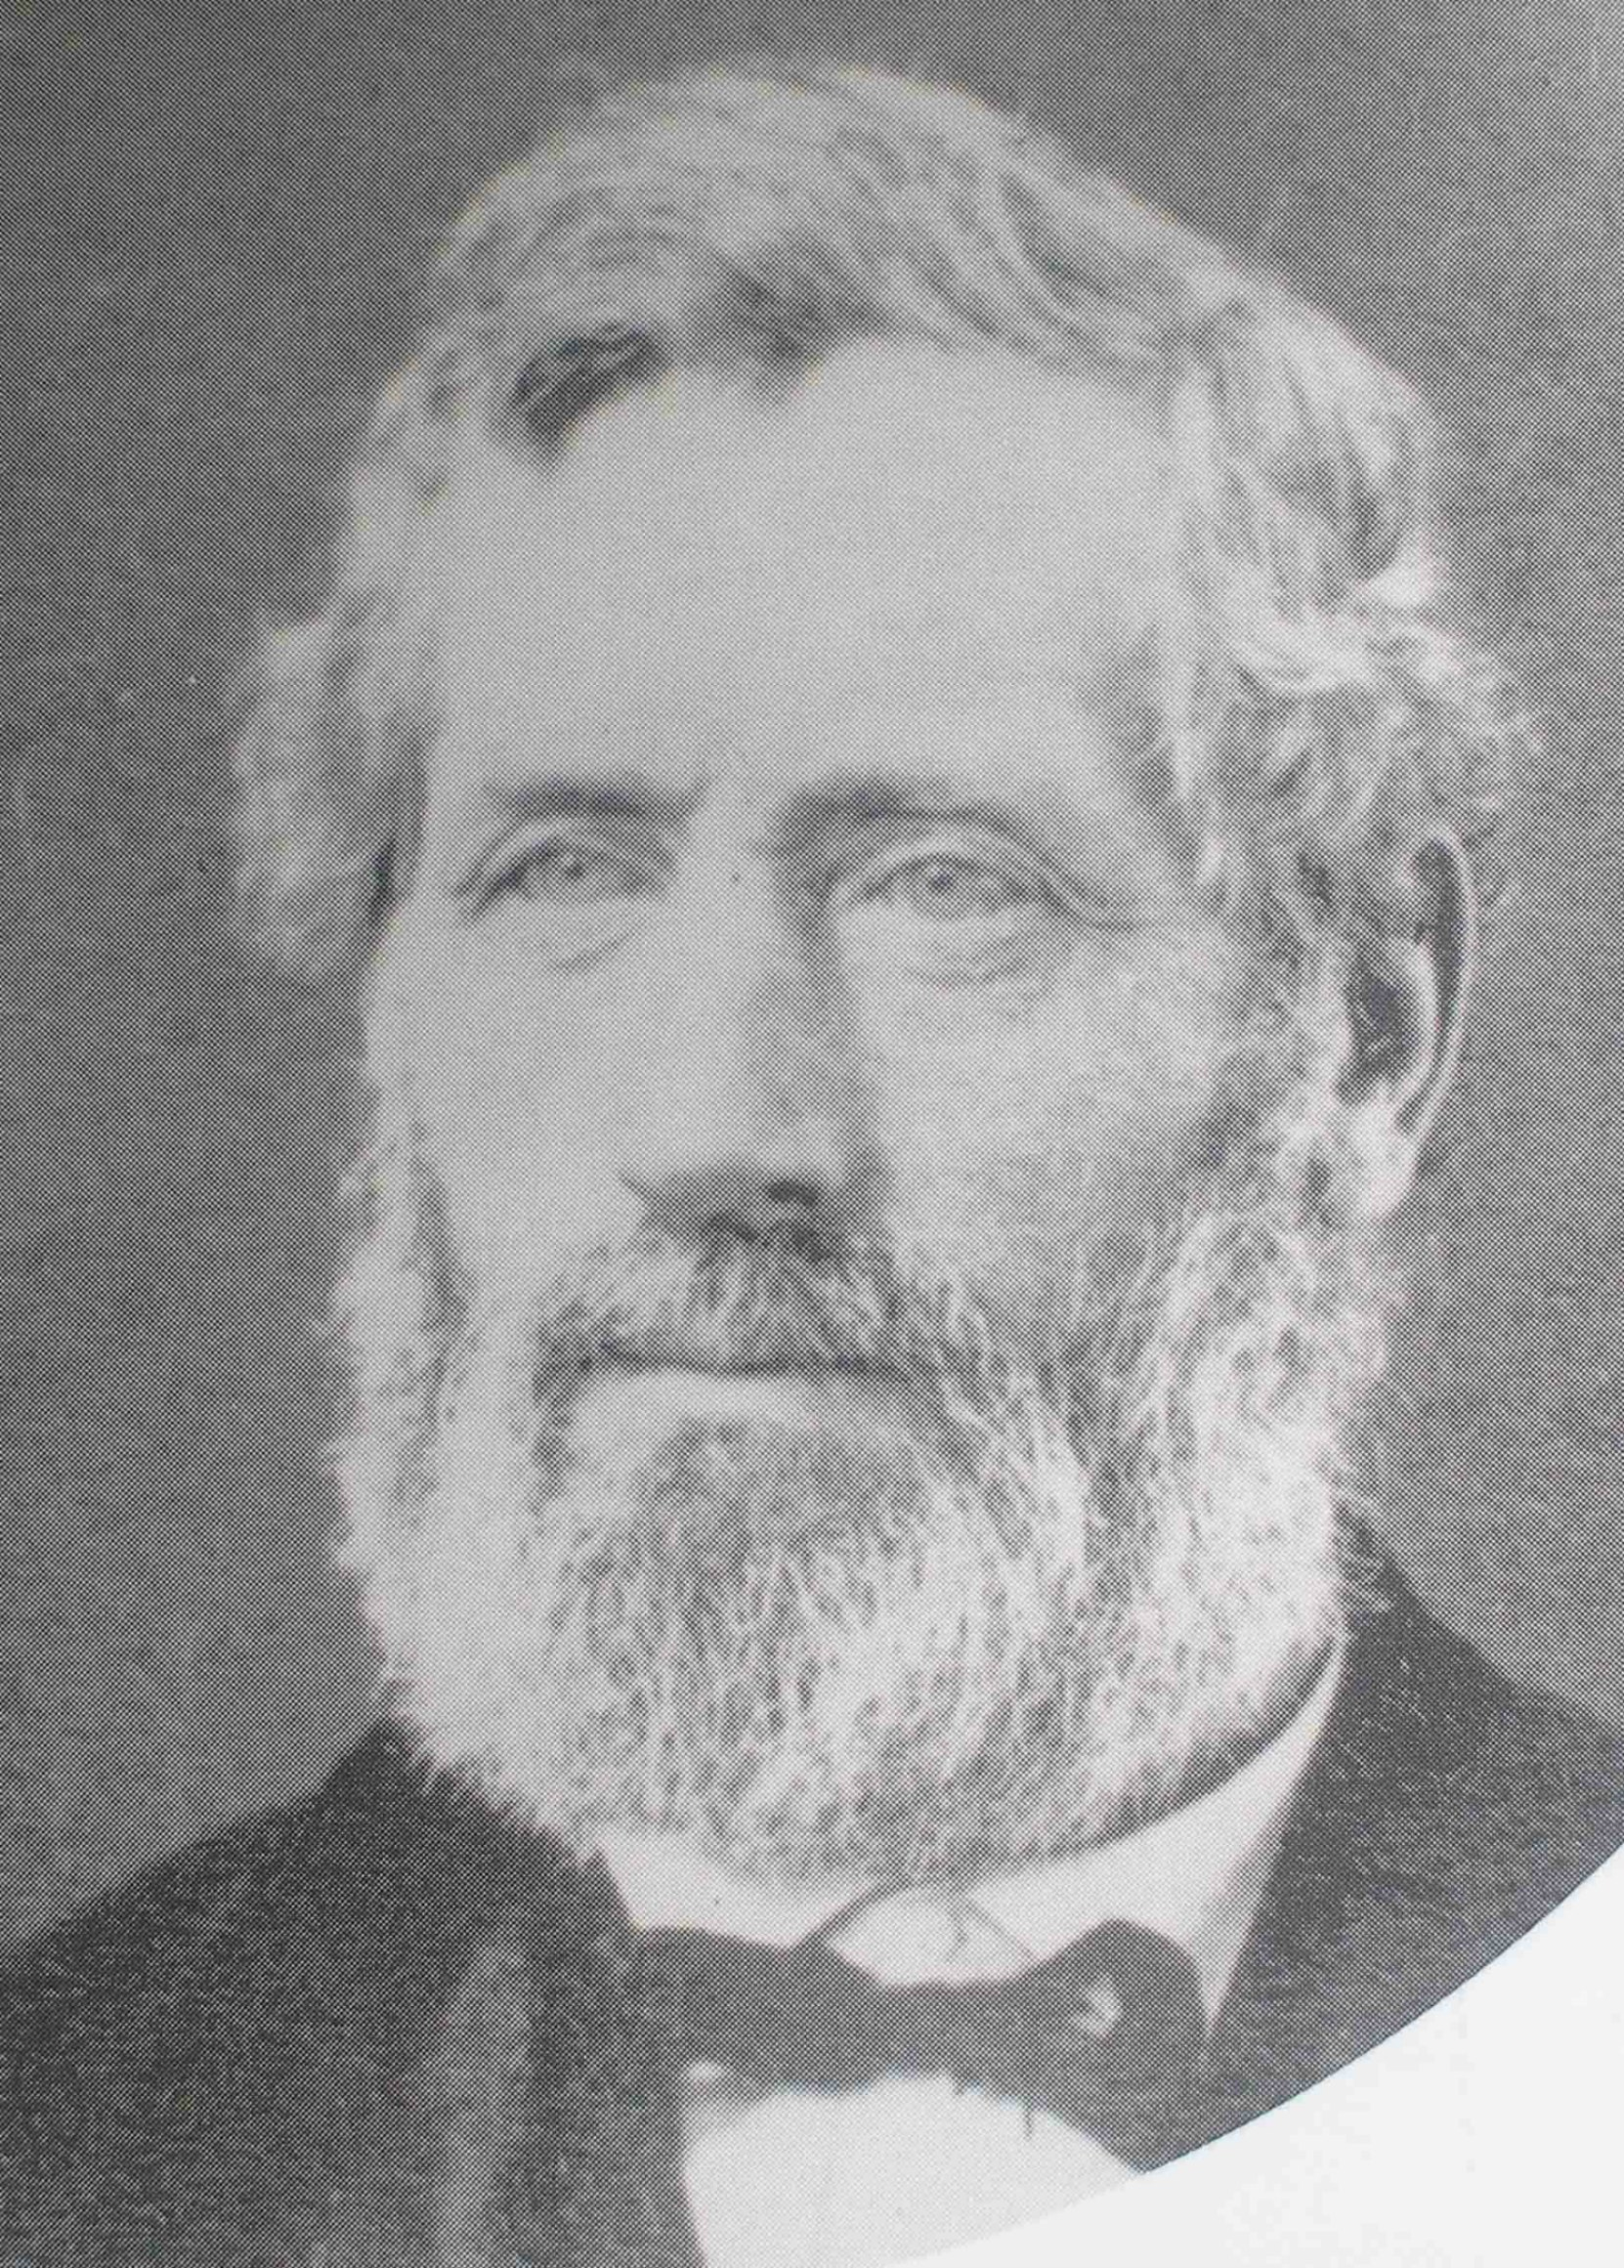 Richard Lewis, circa 1874